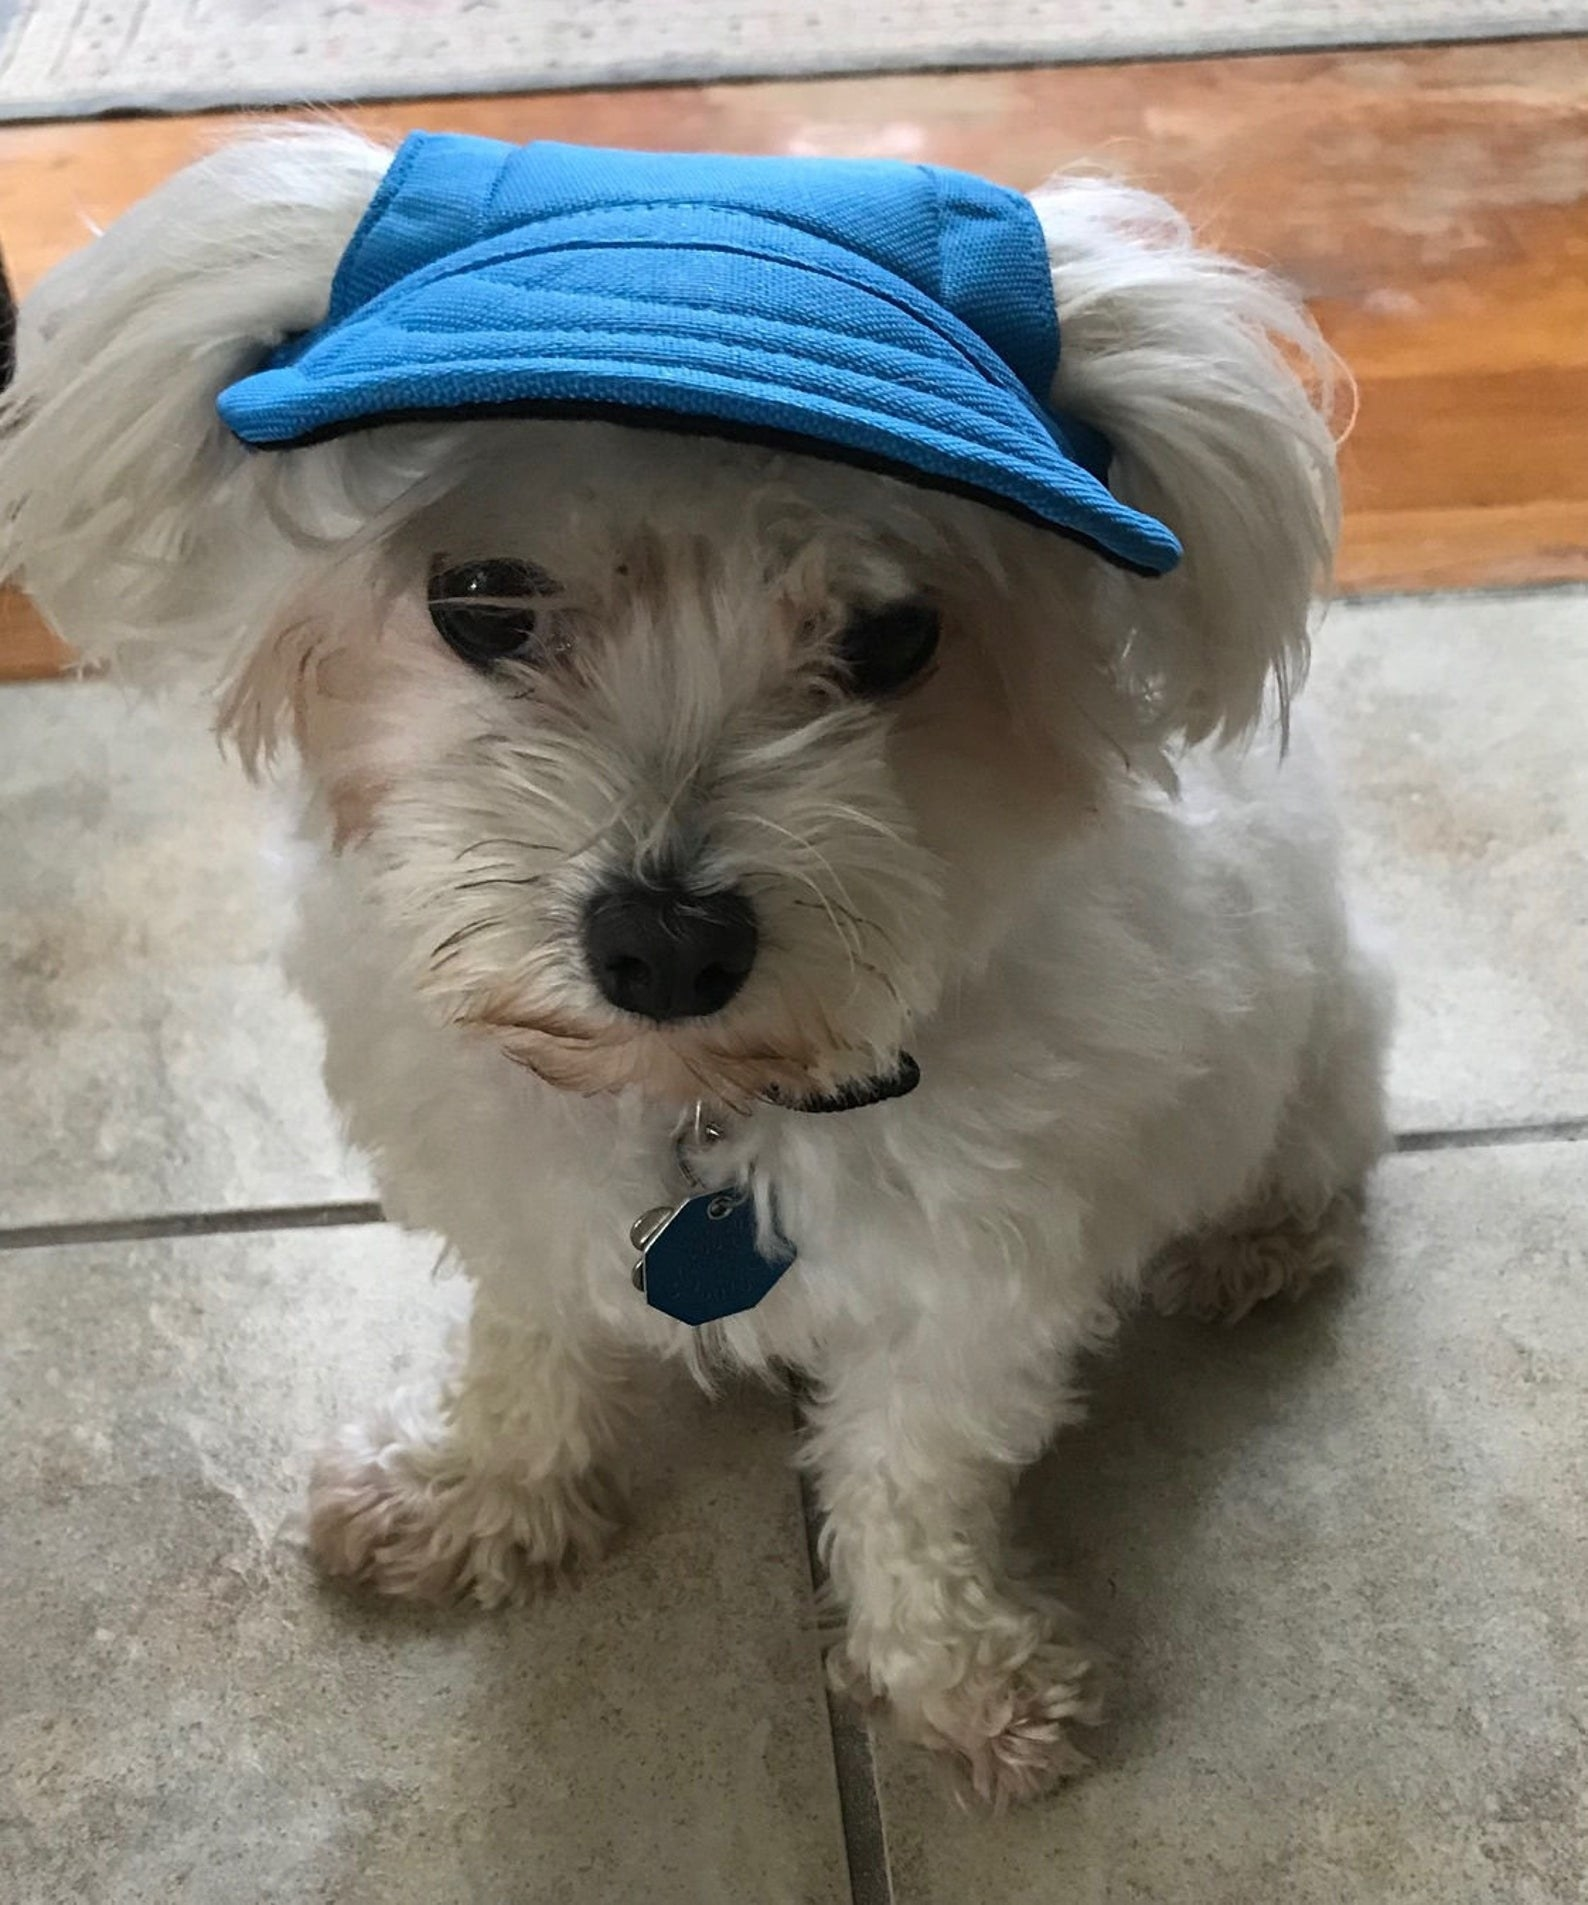 A dog wearing a blue visor where its ears come out at the sides